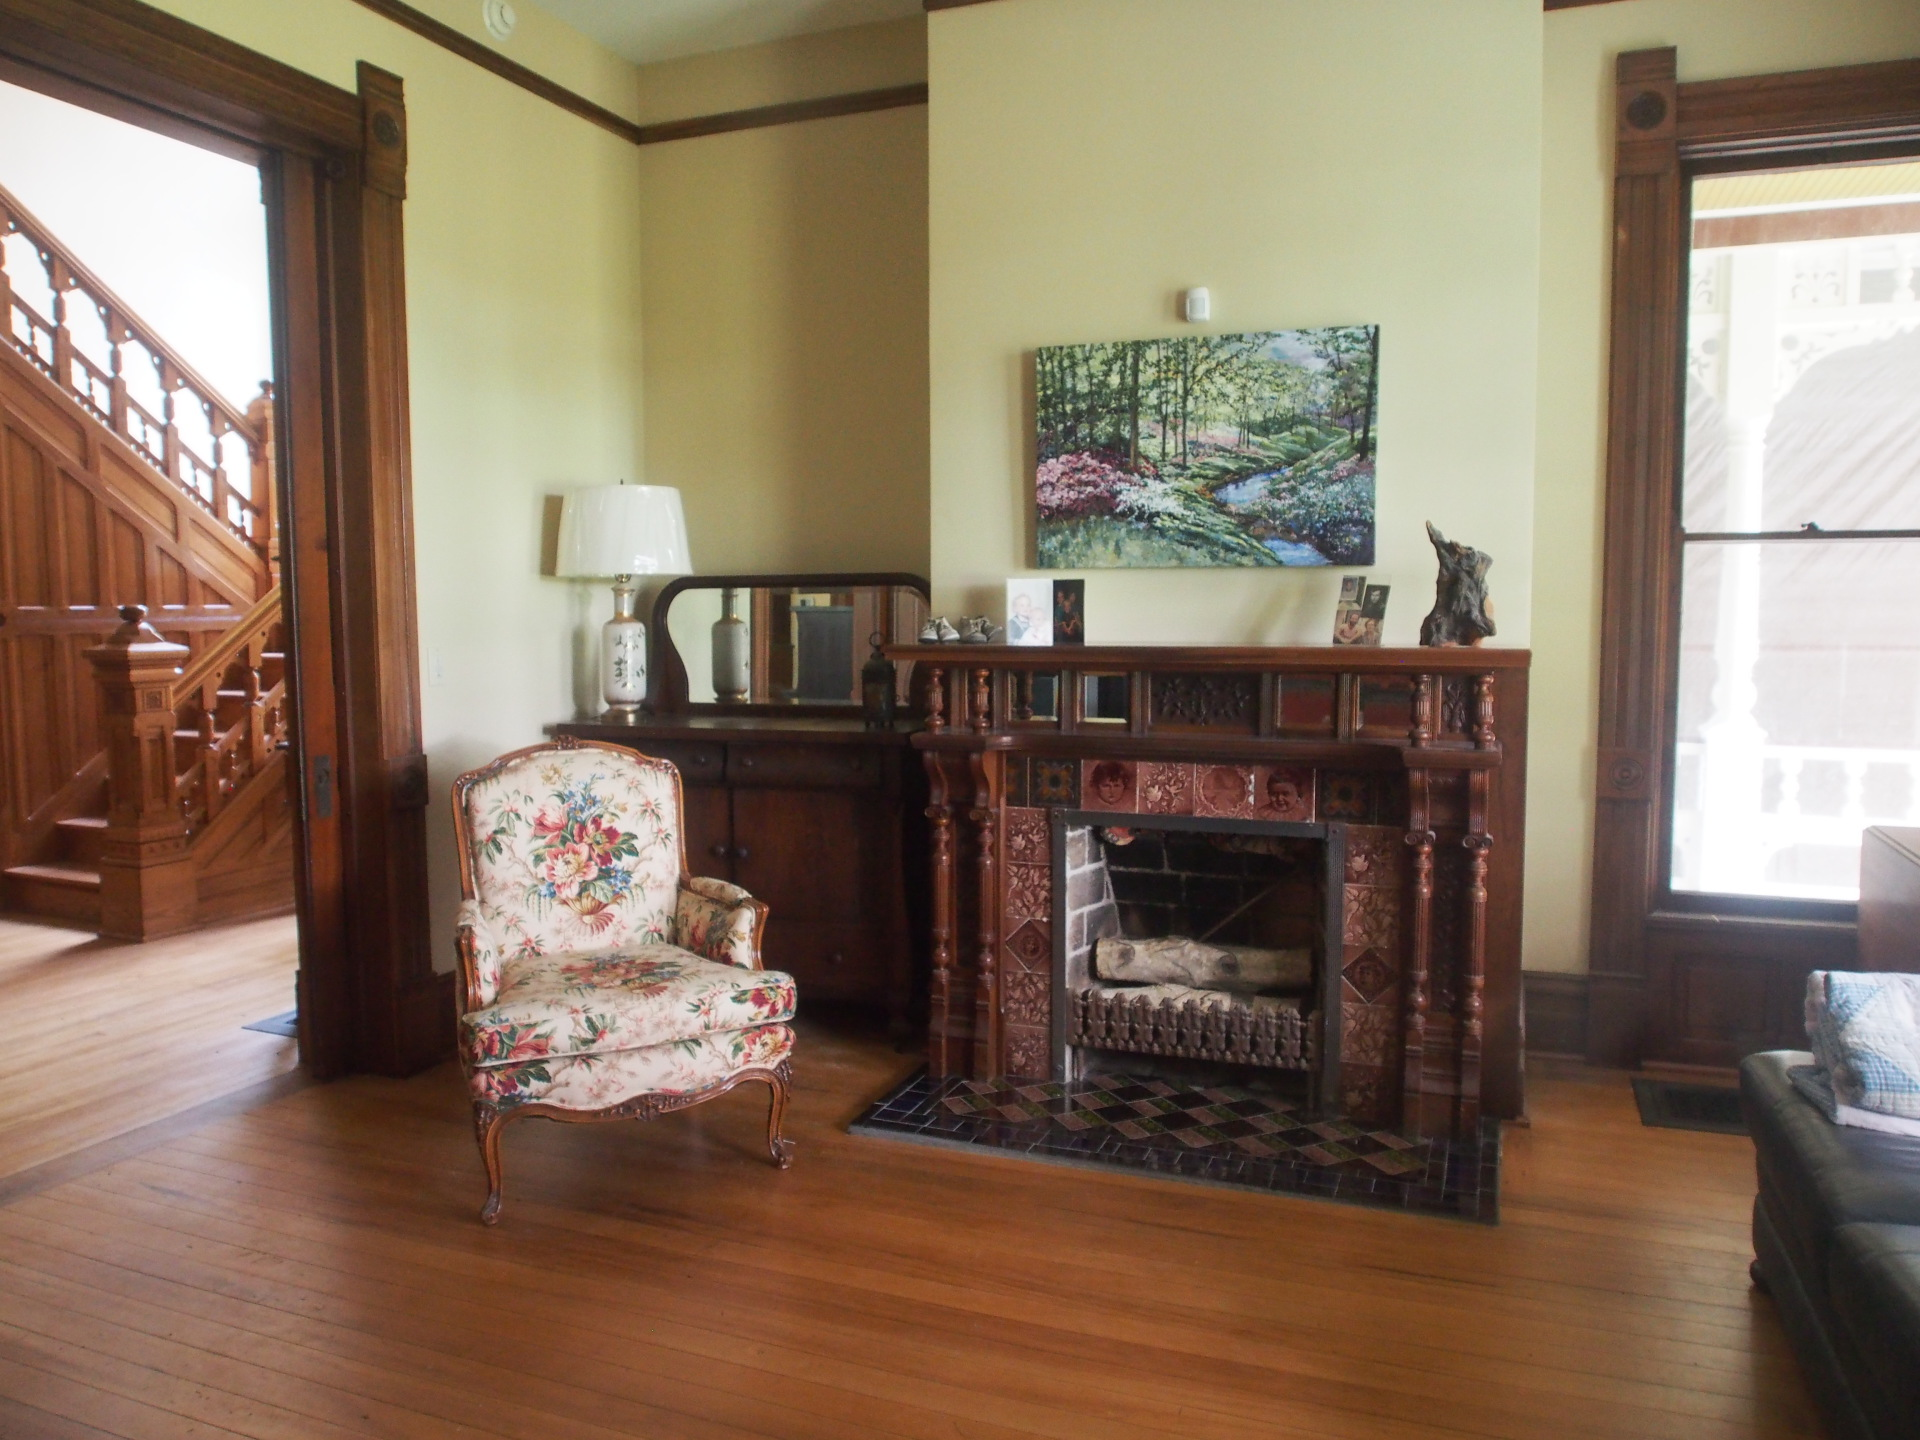 First parlor